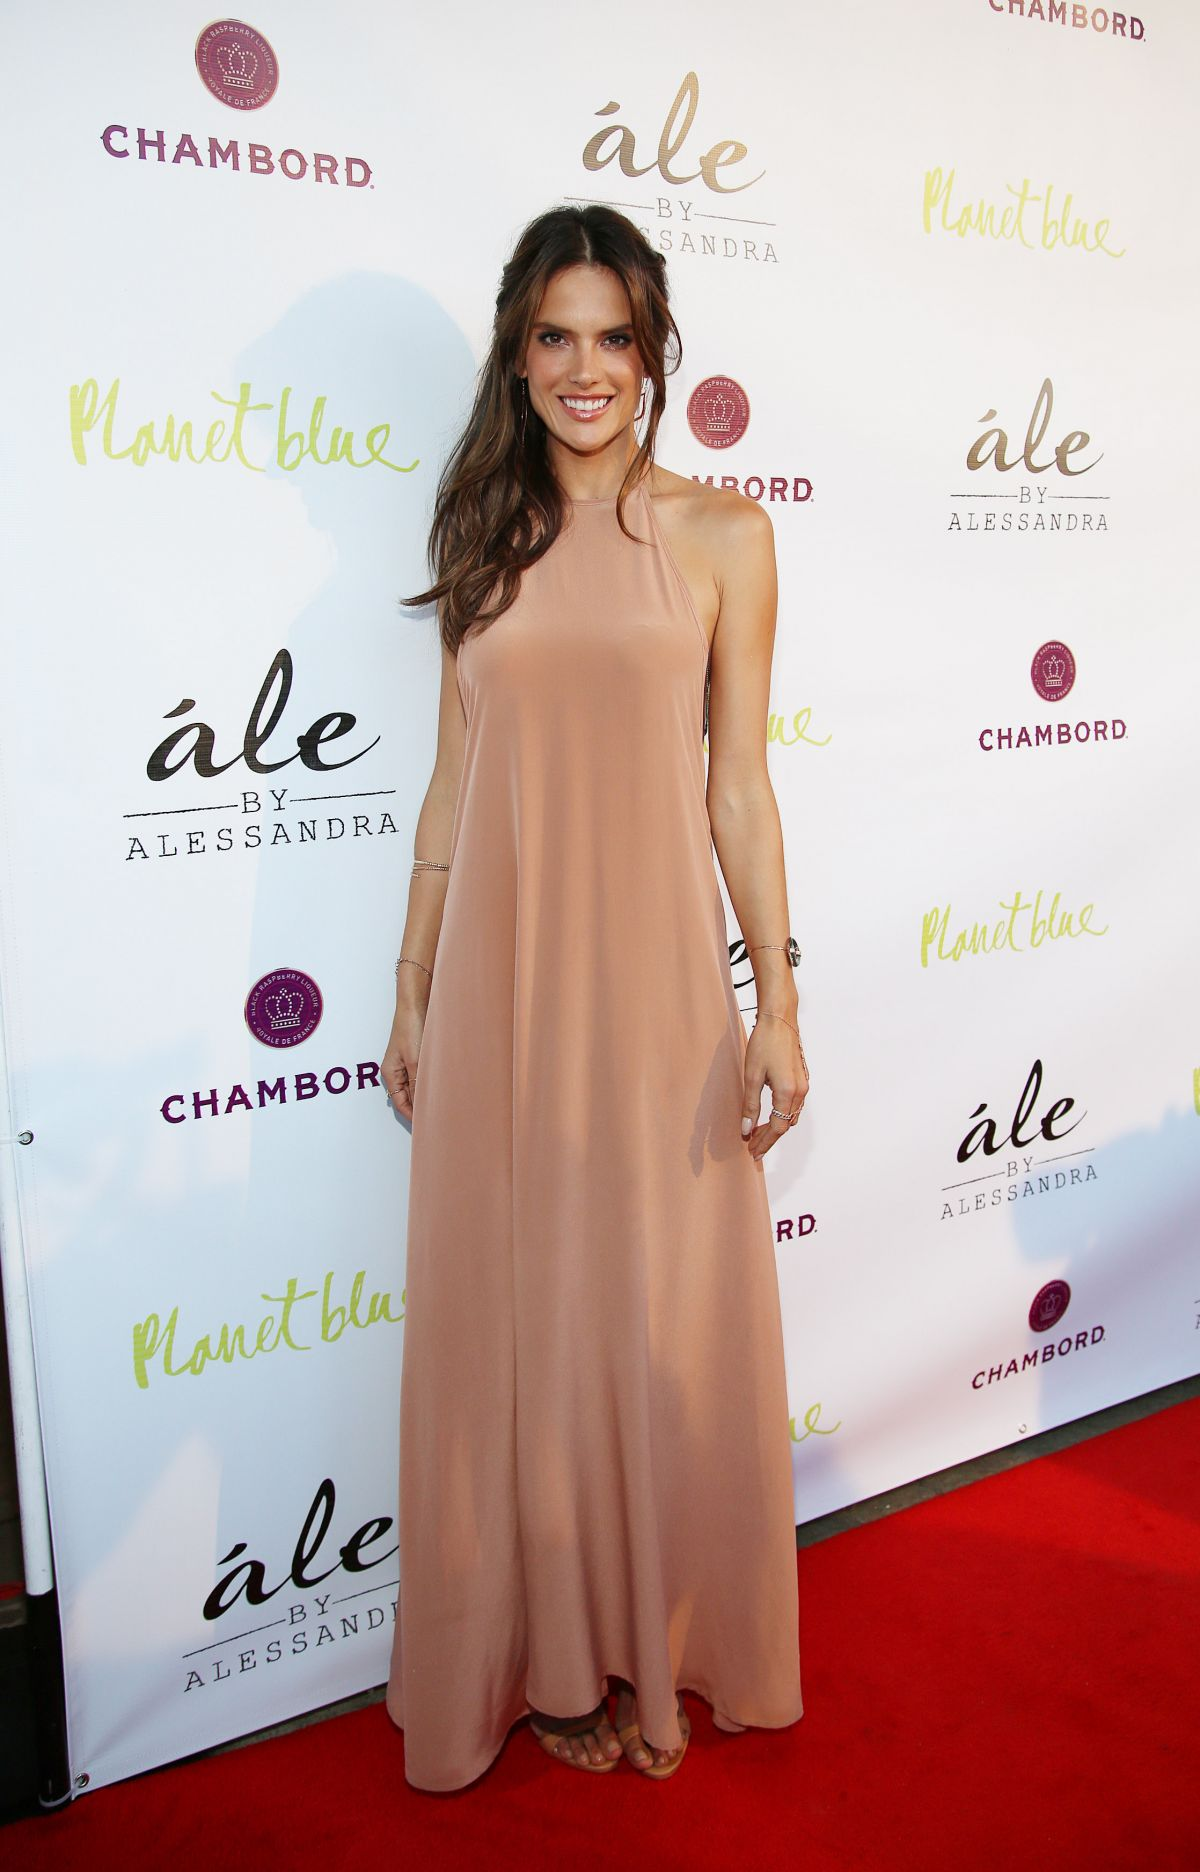 ALESSANDRA AMBROSIO at Ale by Alessandra Collection Launch in Los Angeles